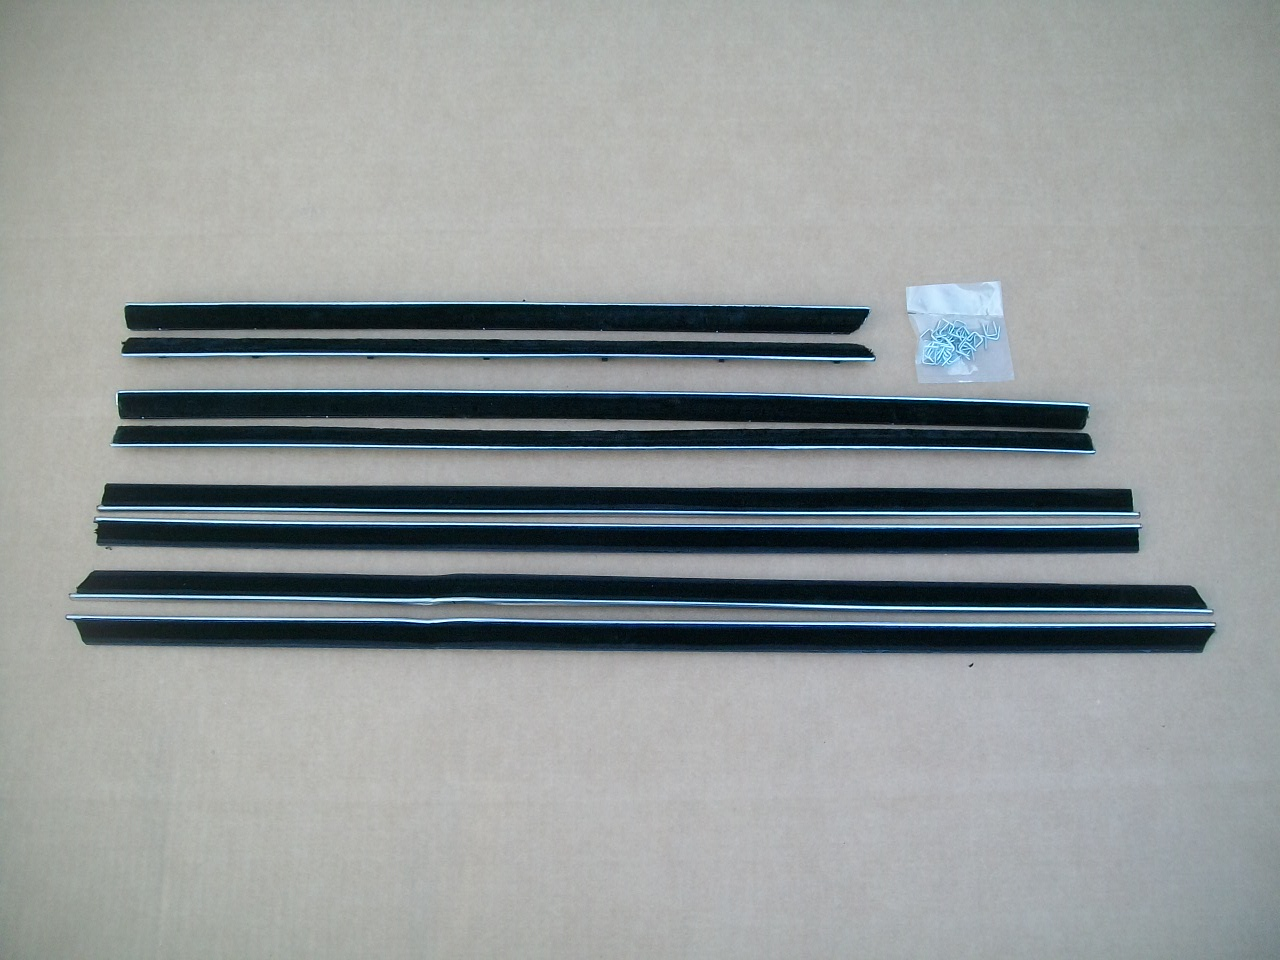 65-68 DODGE/CHRYSLER C BODY 4 DR HARDTOP COMPLETE SET BELT CATWHISKERS